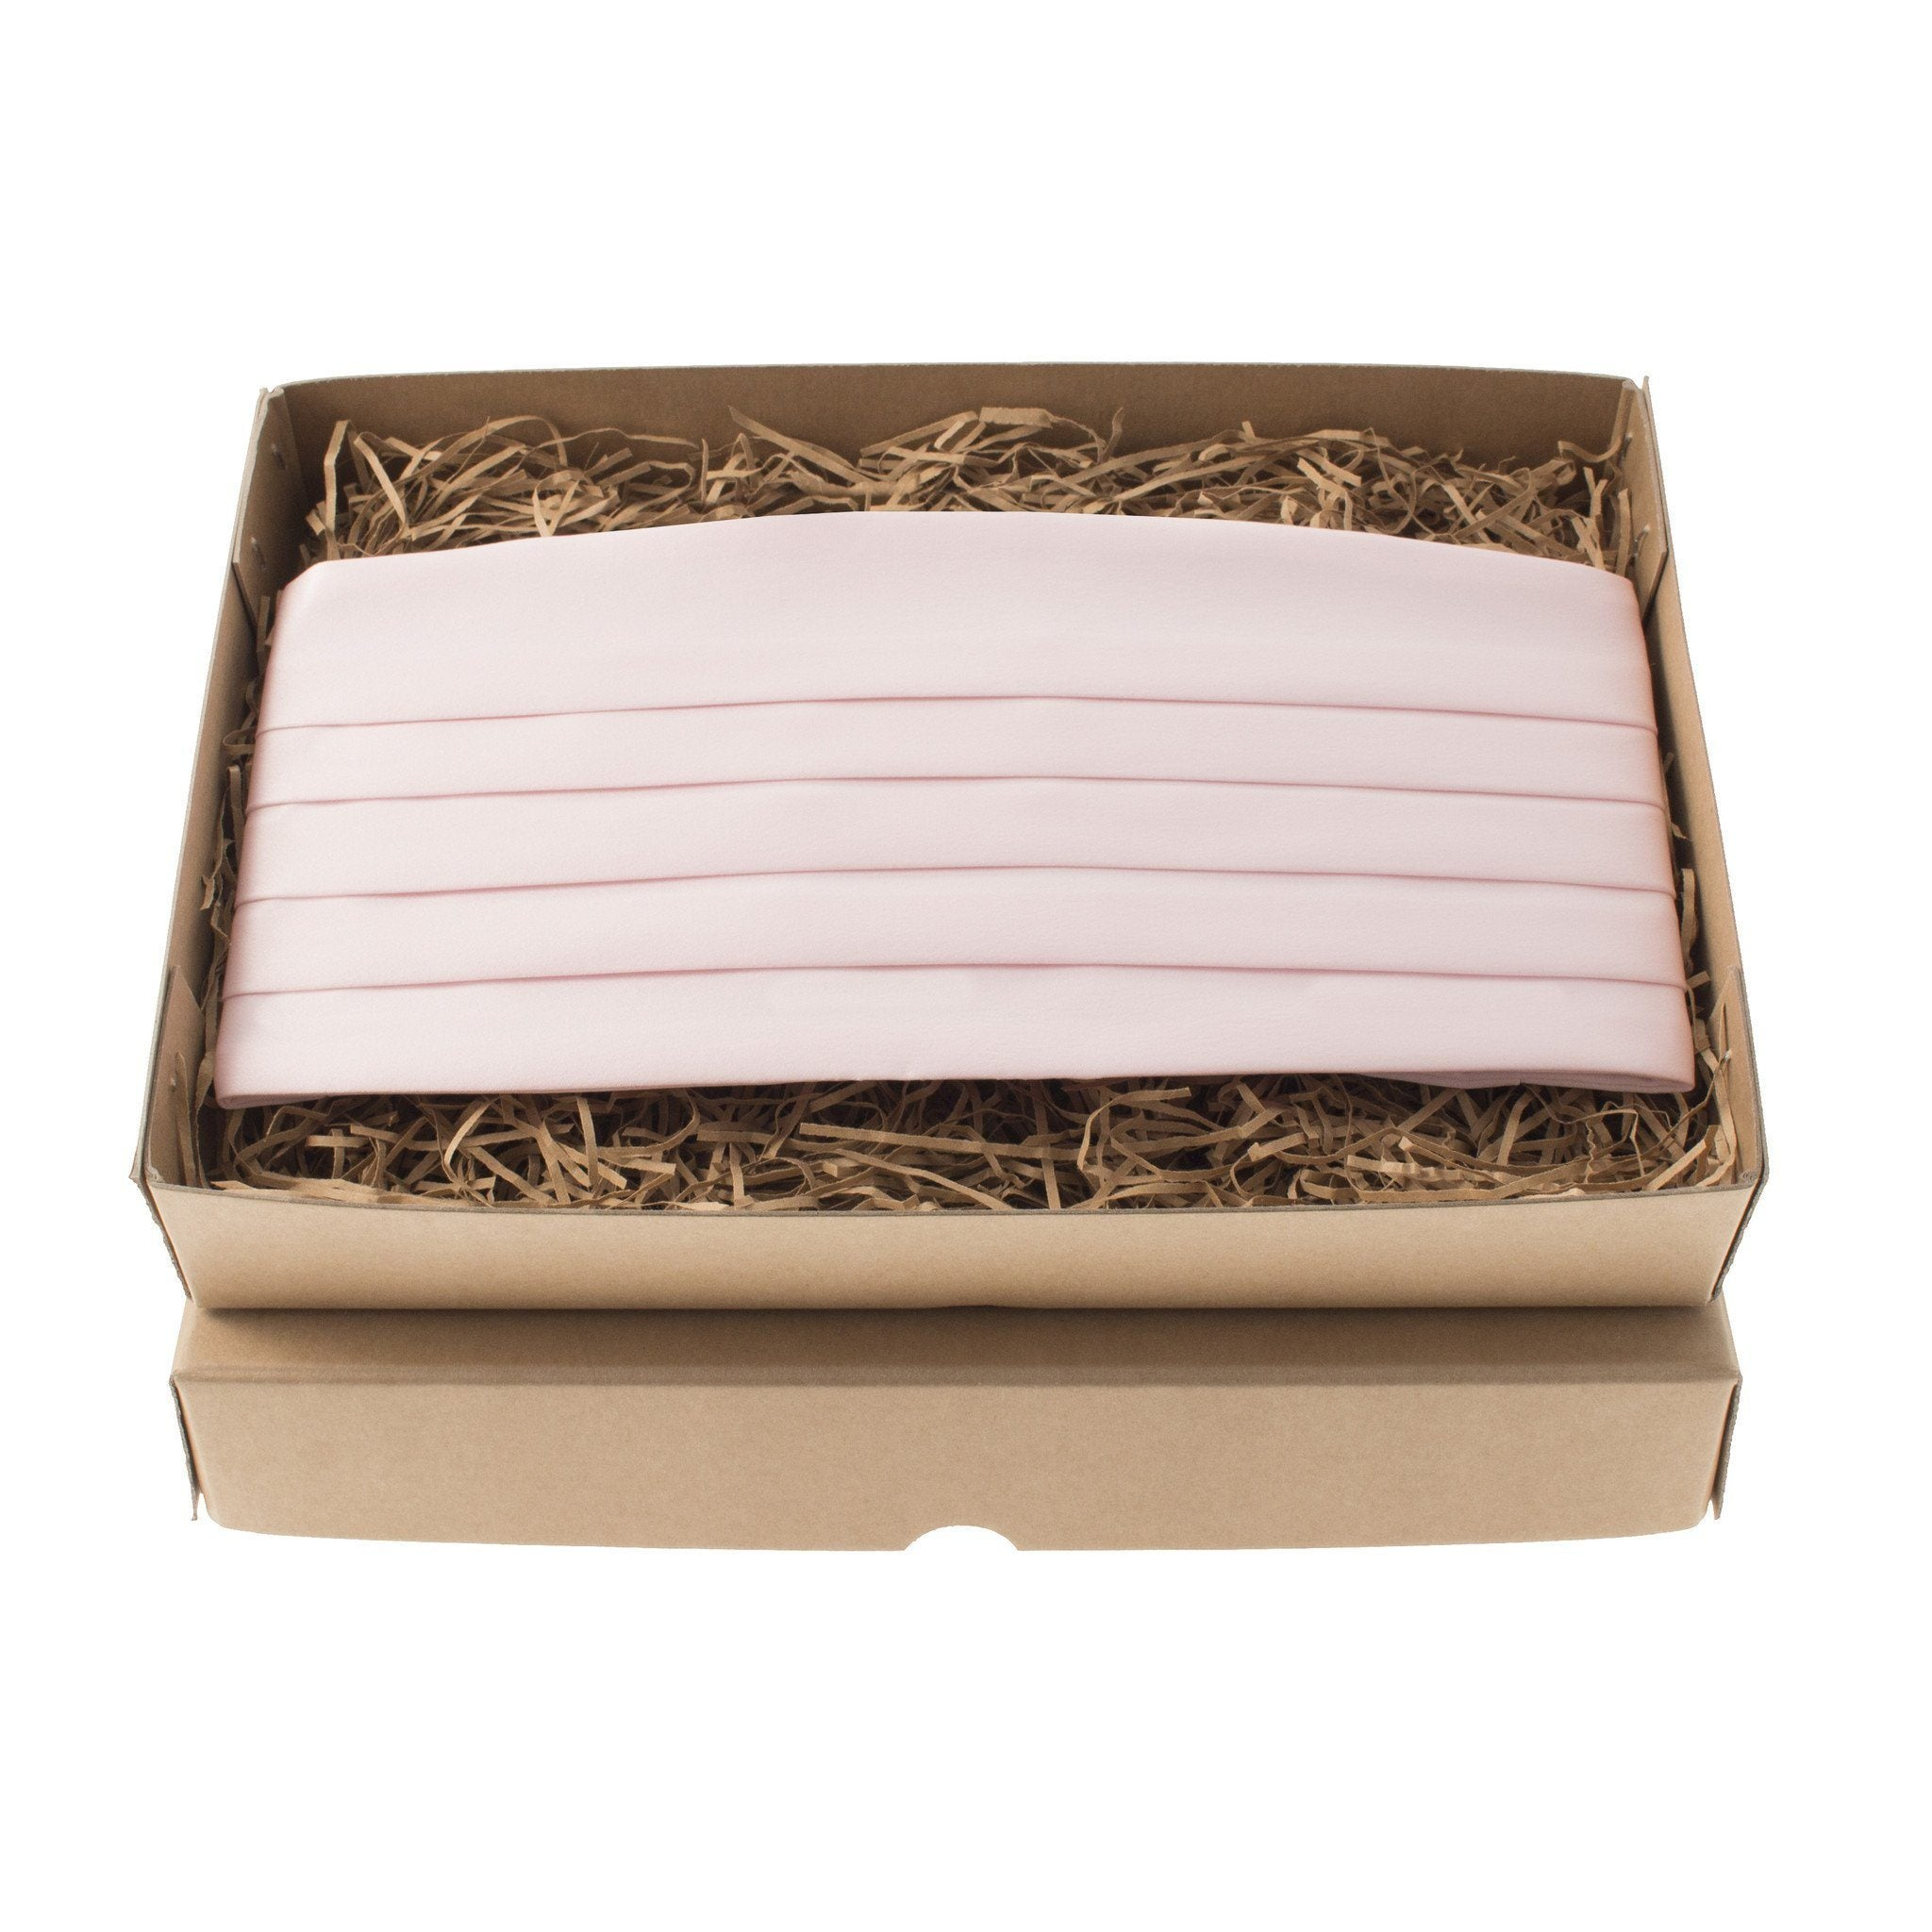 Satin in Pale Pink Cummerbund